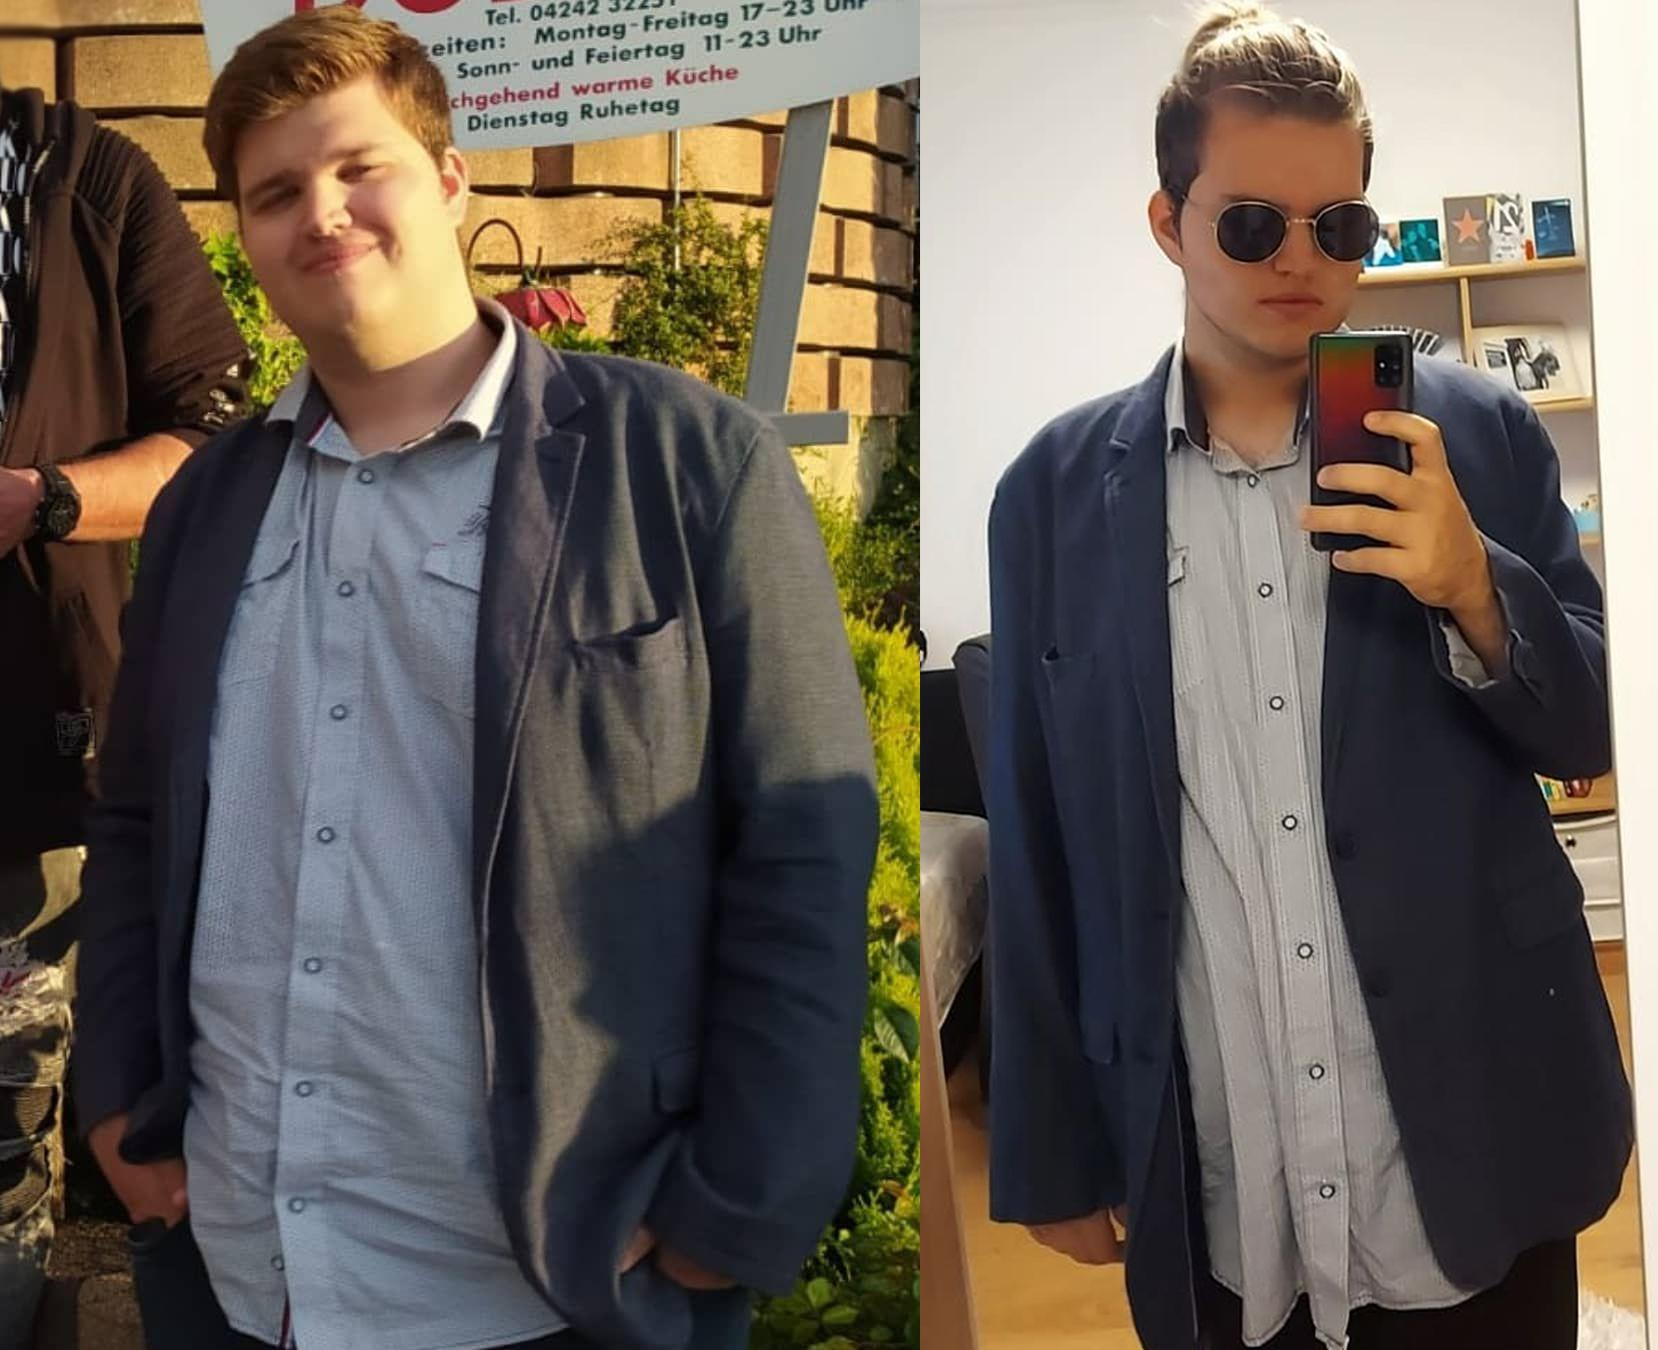 6'4 Male 86 lbs Weight Loss Before and After 326 lbs to 240 lbs